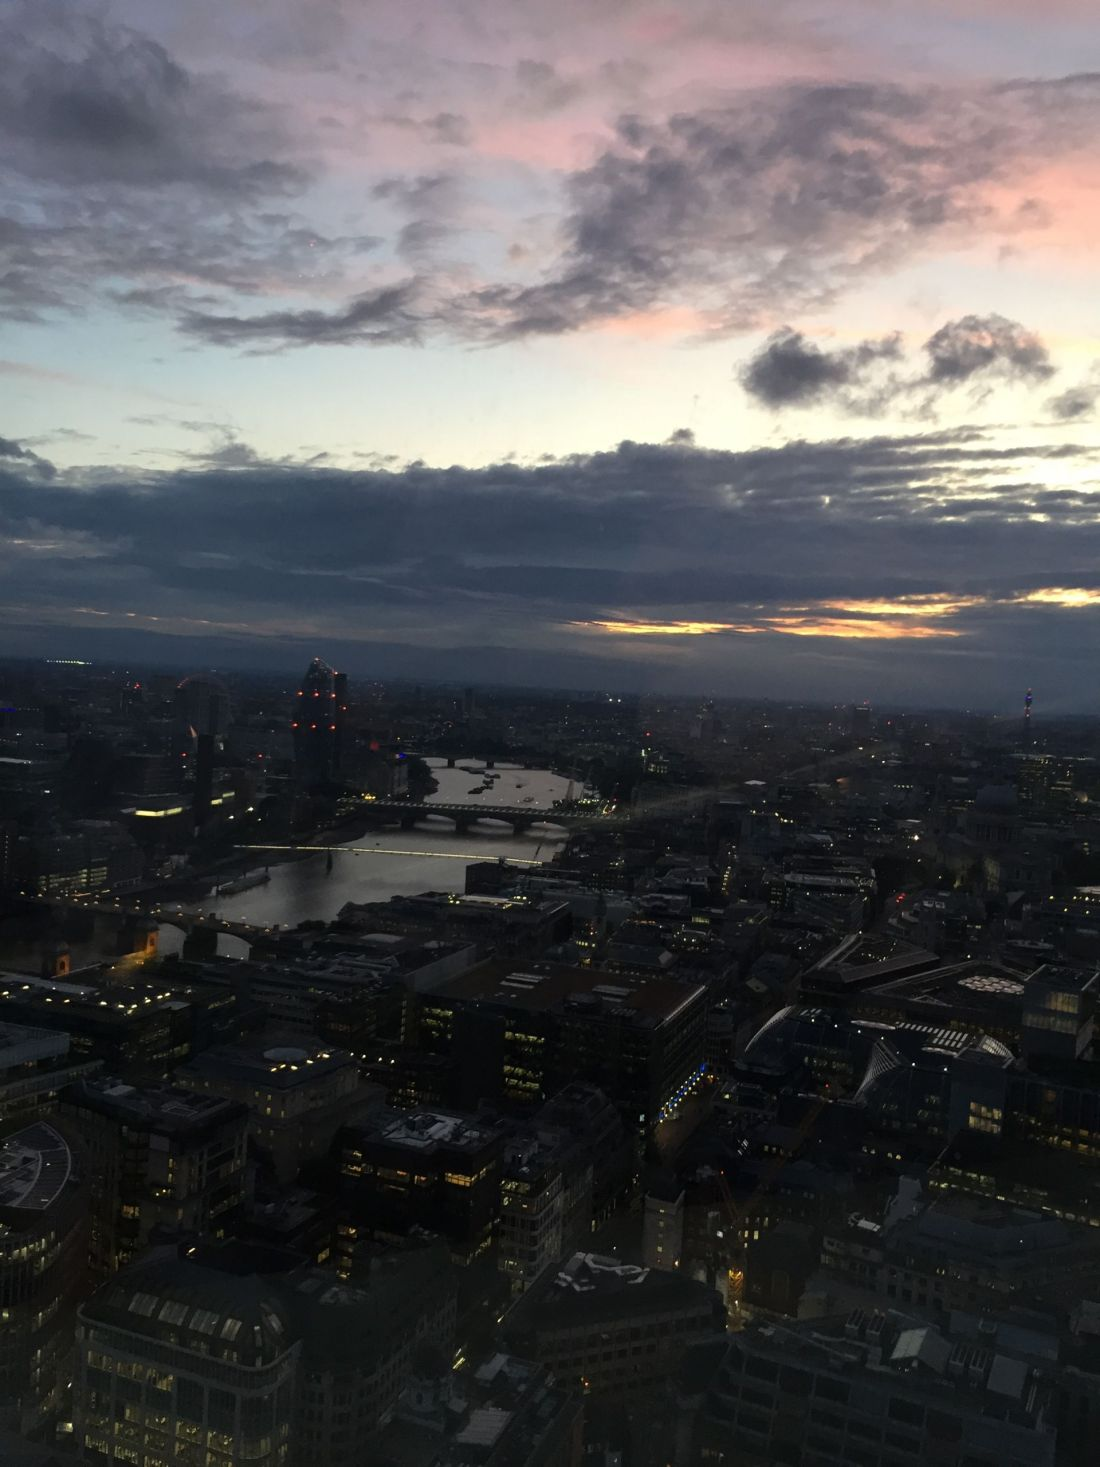 Things to do in London: visit Sky Garden